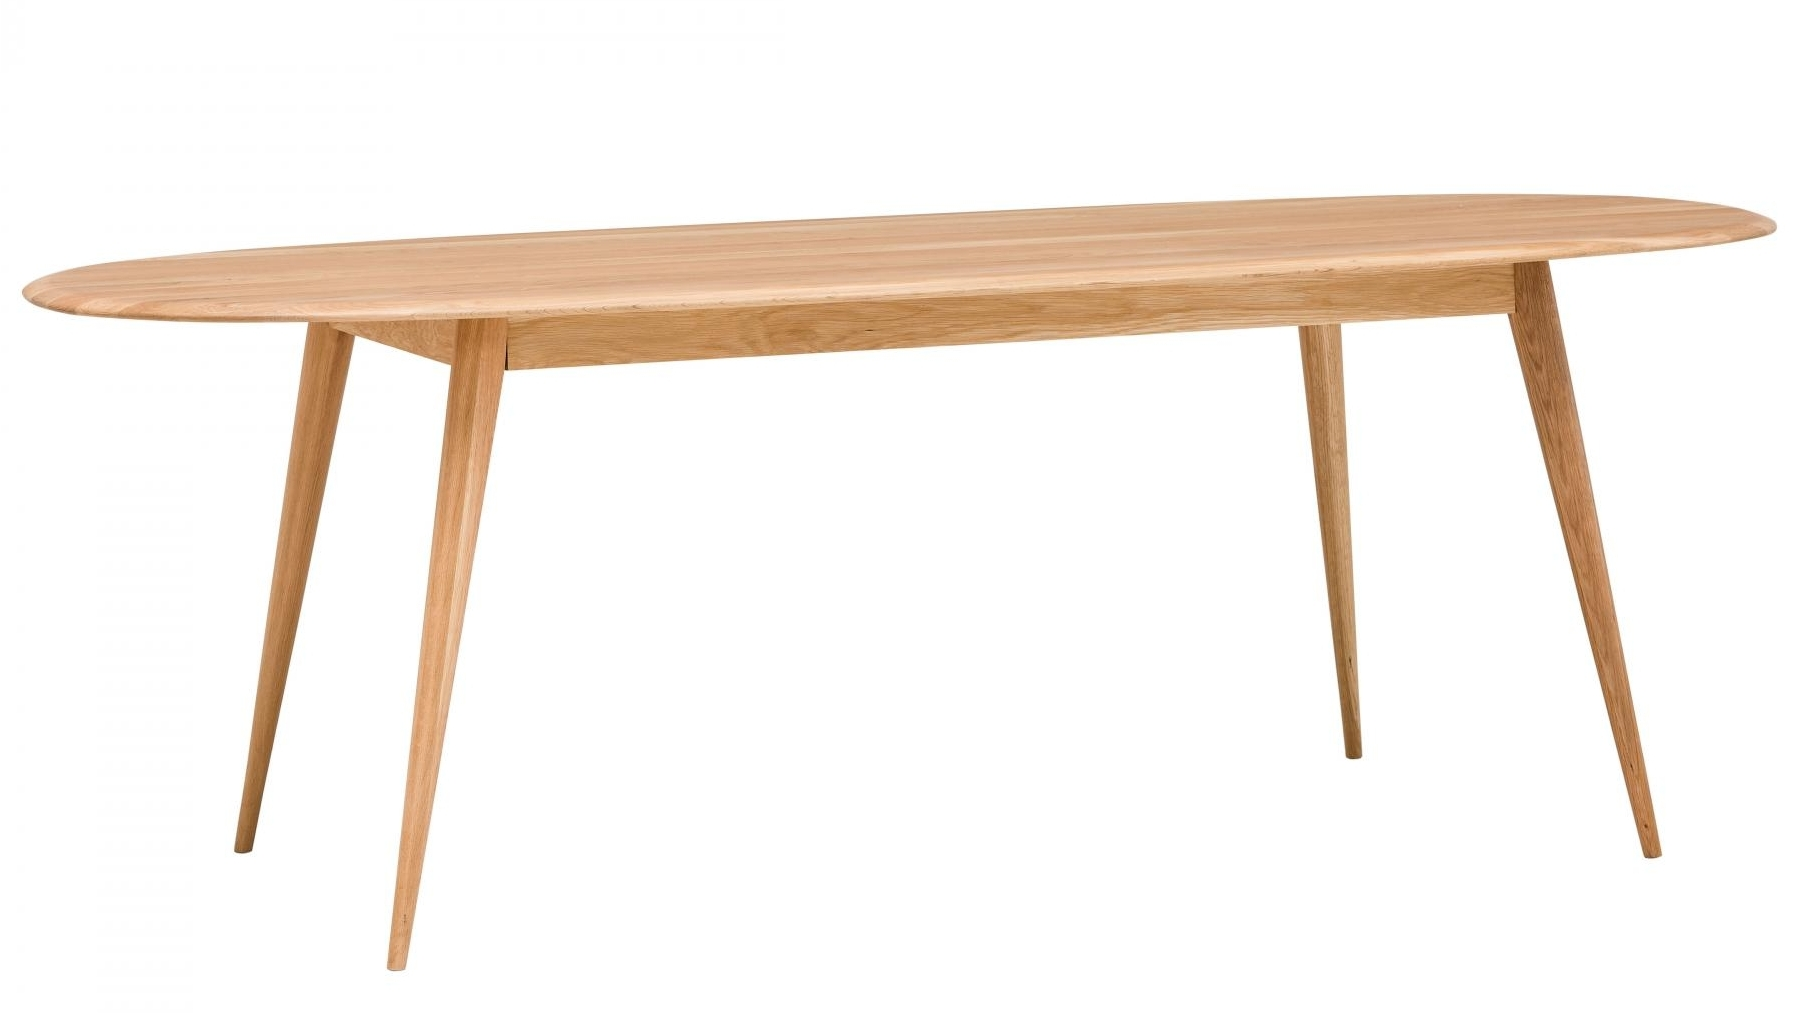 Bianca oval dining table domayne for Oval dining table